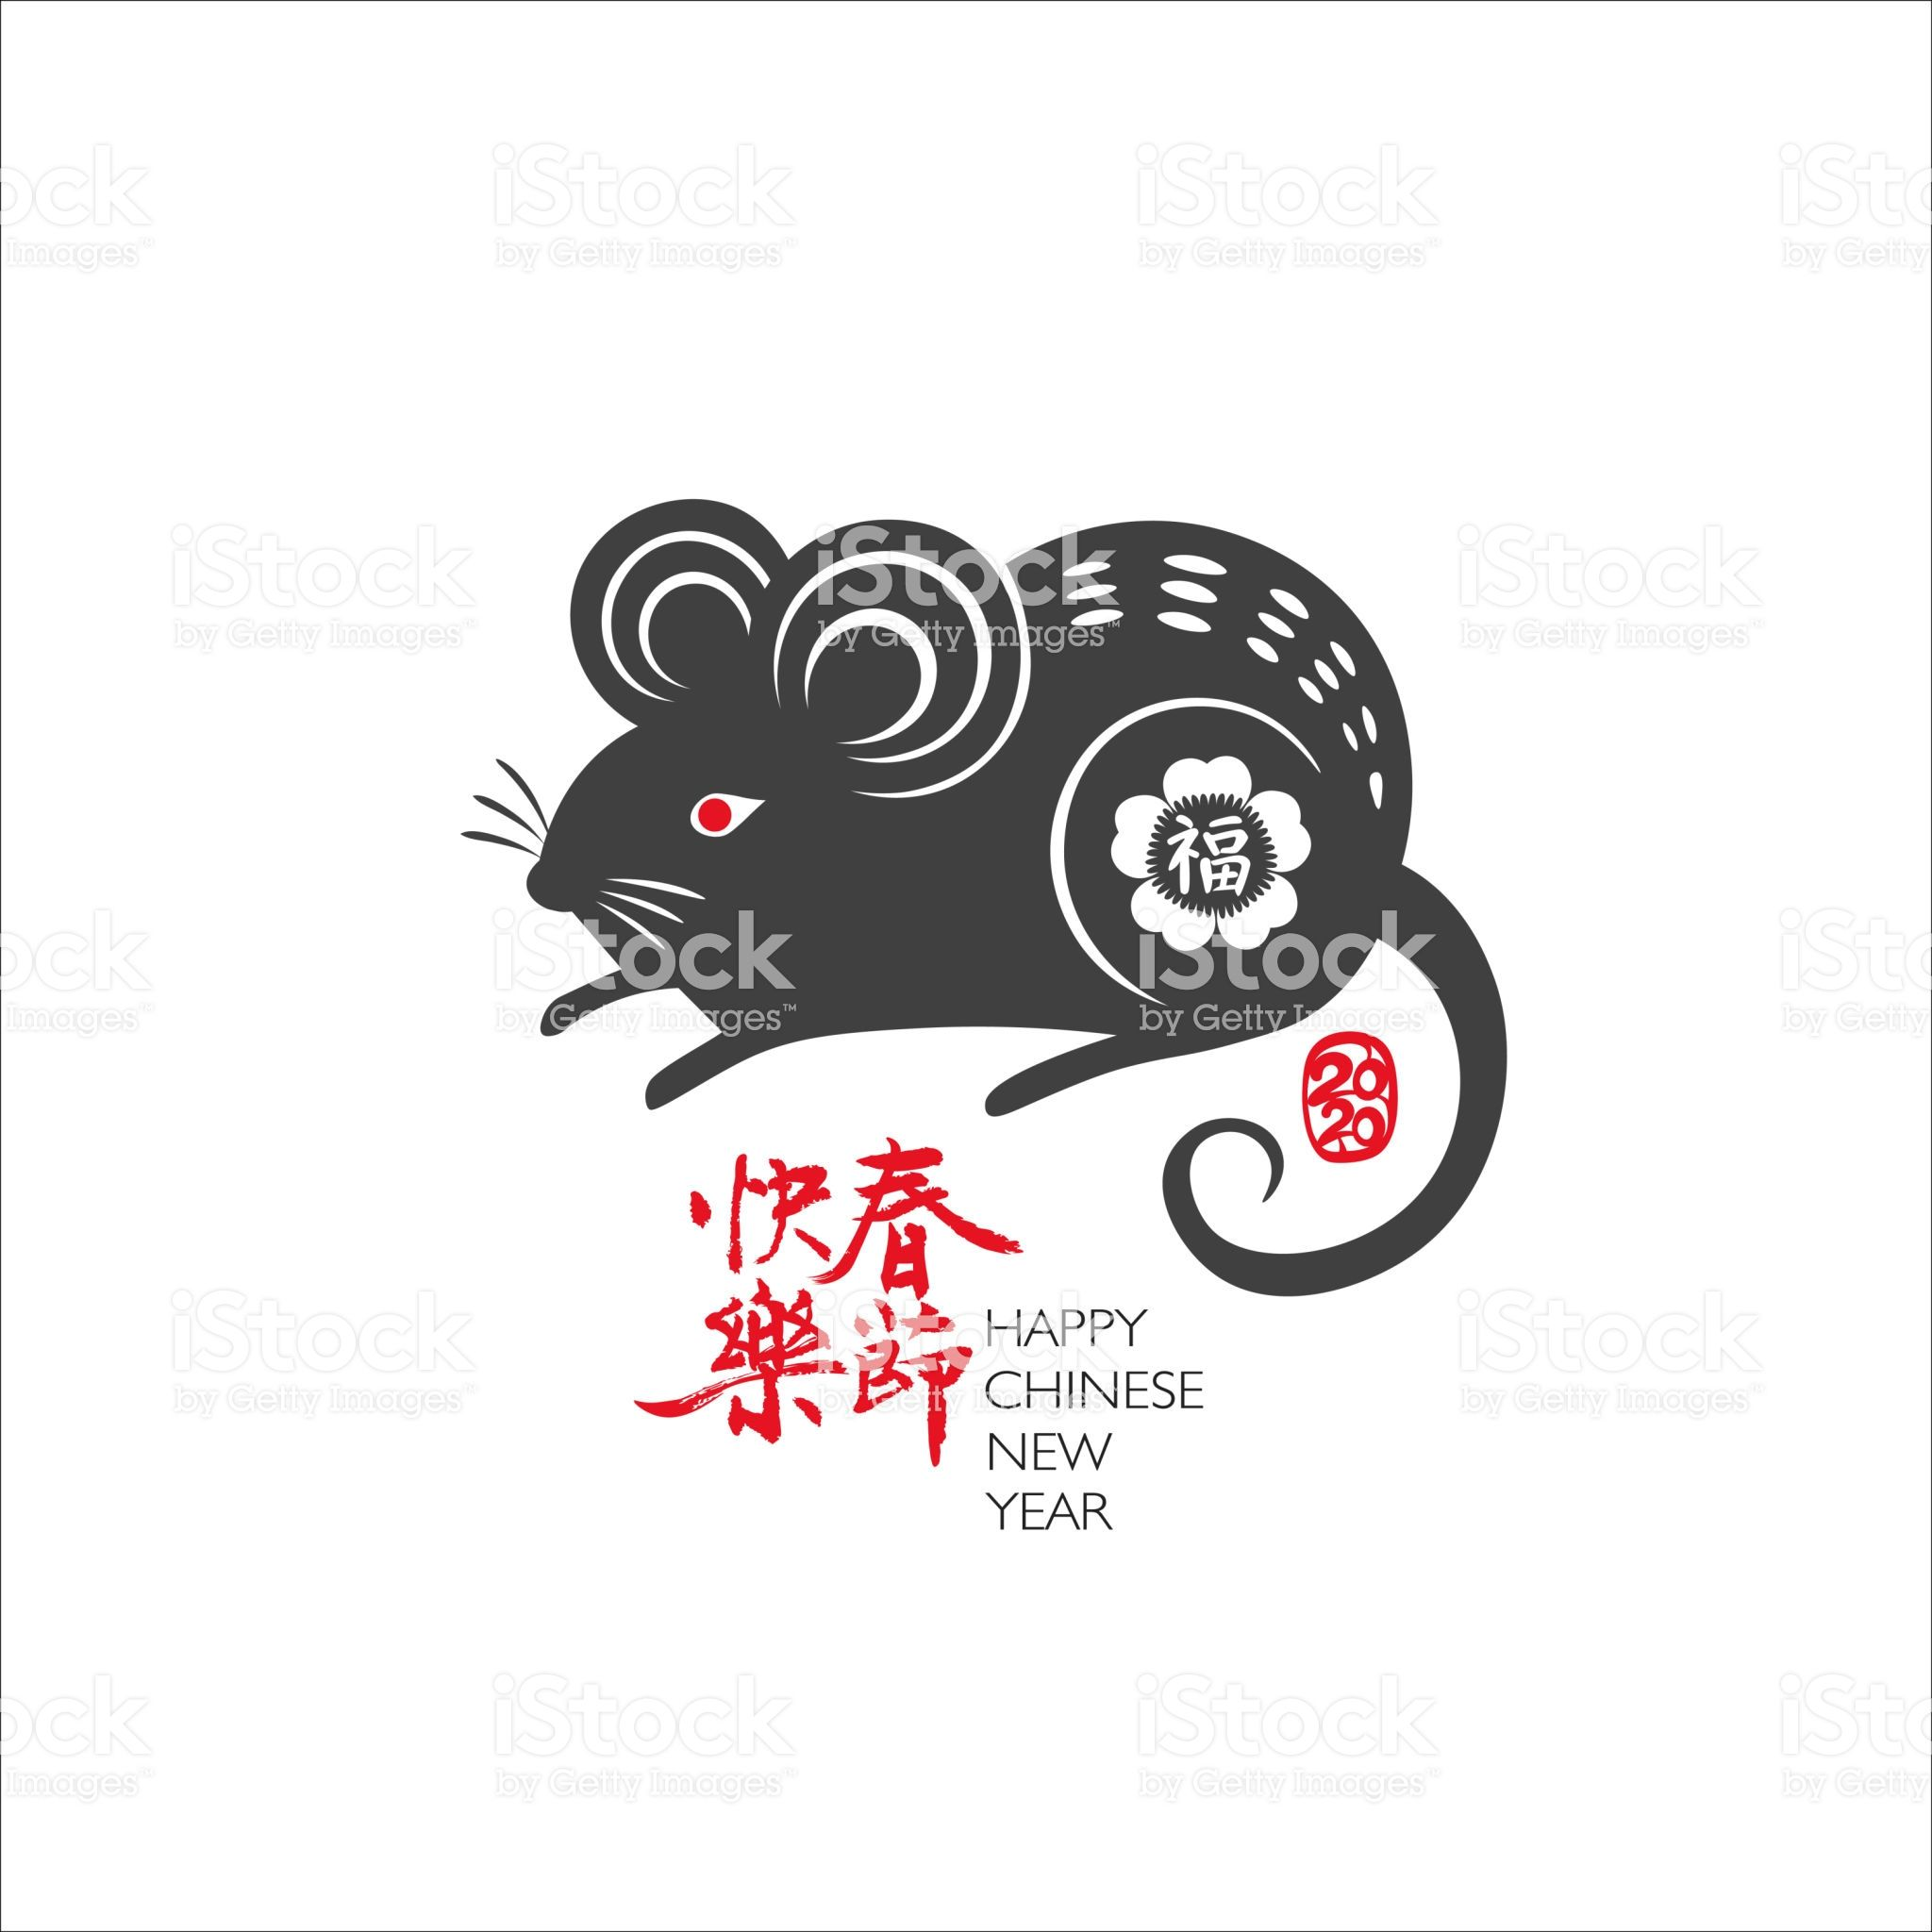 Funny animal in chinese zodiac rat ox tiger vector image